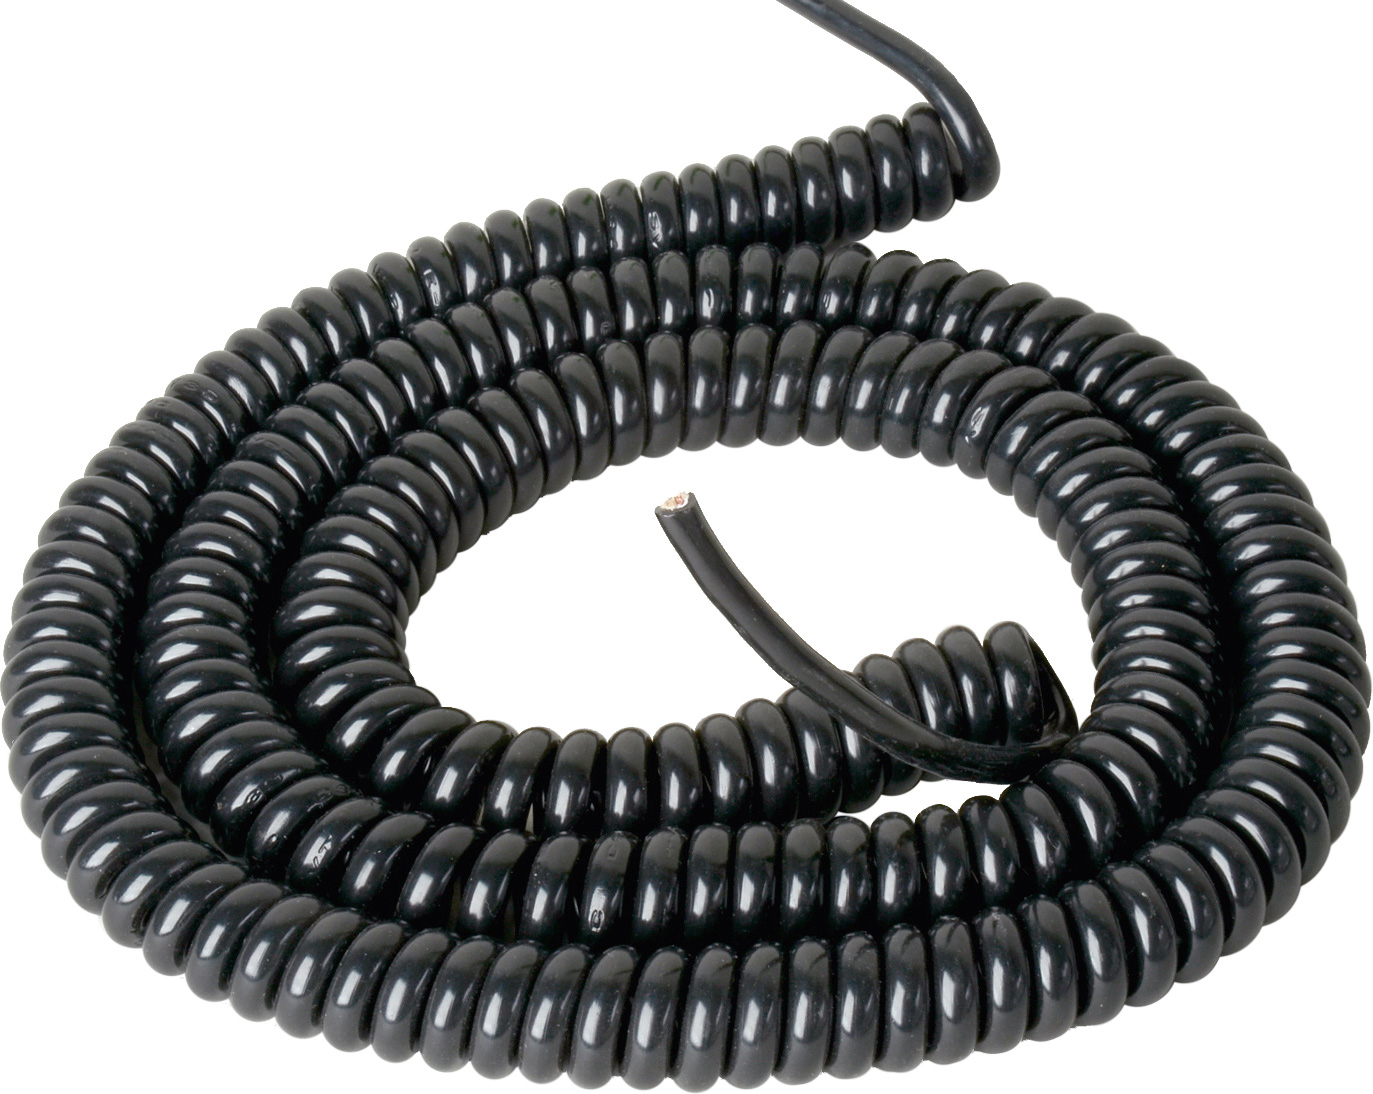 Pvc Coil Cable : Inch pvc coiled power cable awg extends to feet